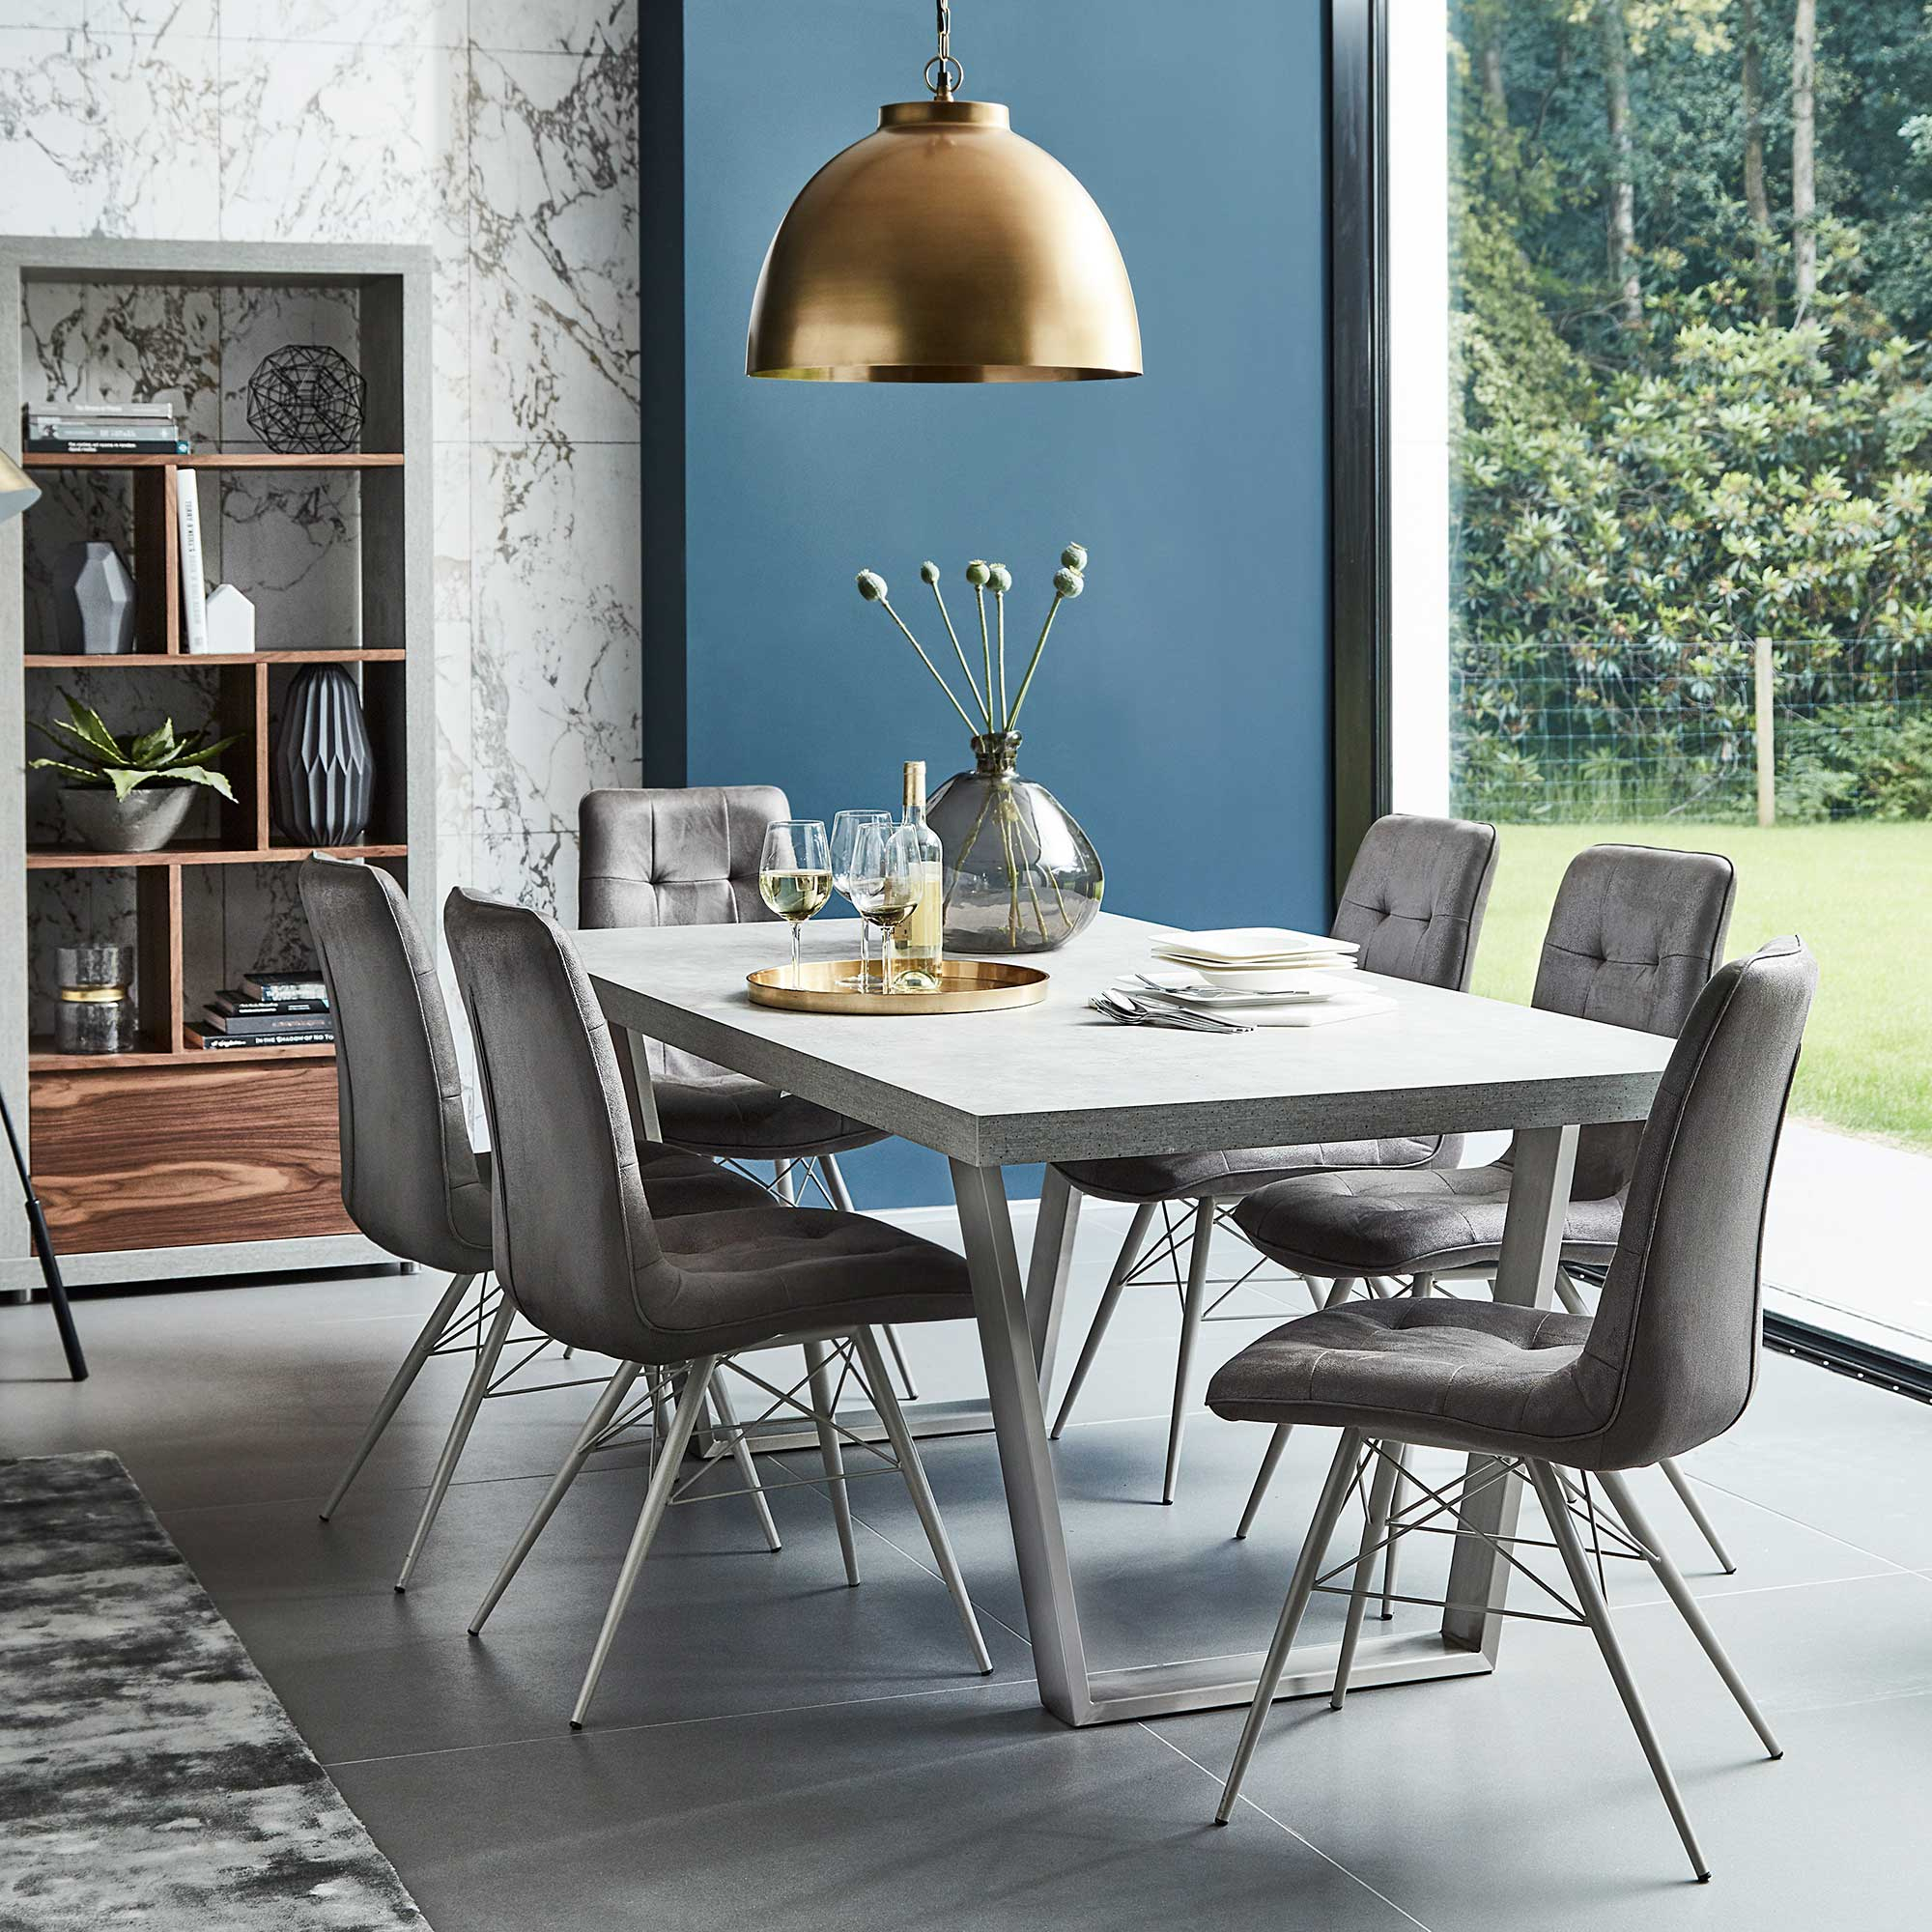 Halmstad Dining Table Concrete Tables Dining Room regarding 10 Clever Concepts of How to Upgrade Living Room And Dining Room Sets